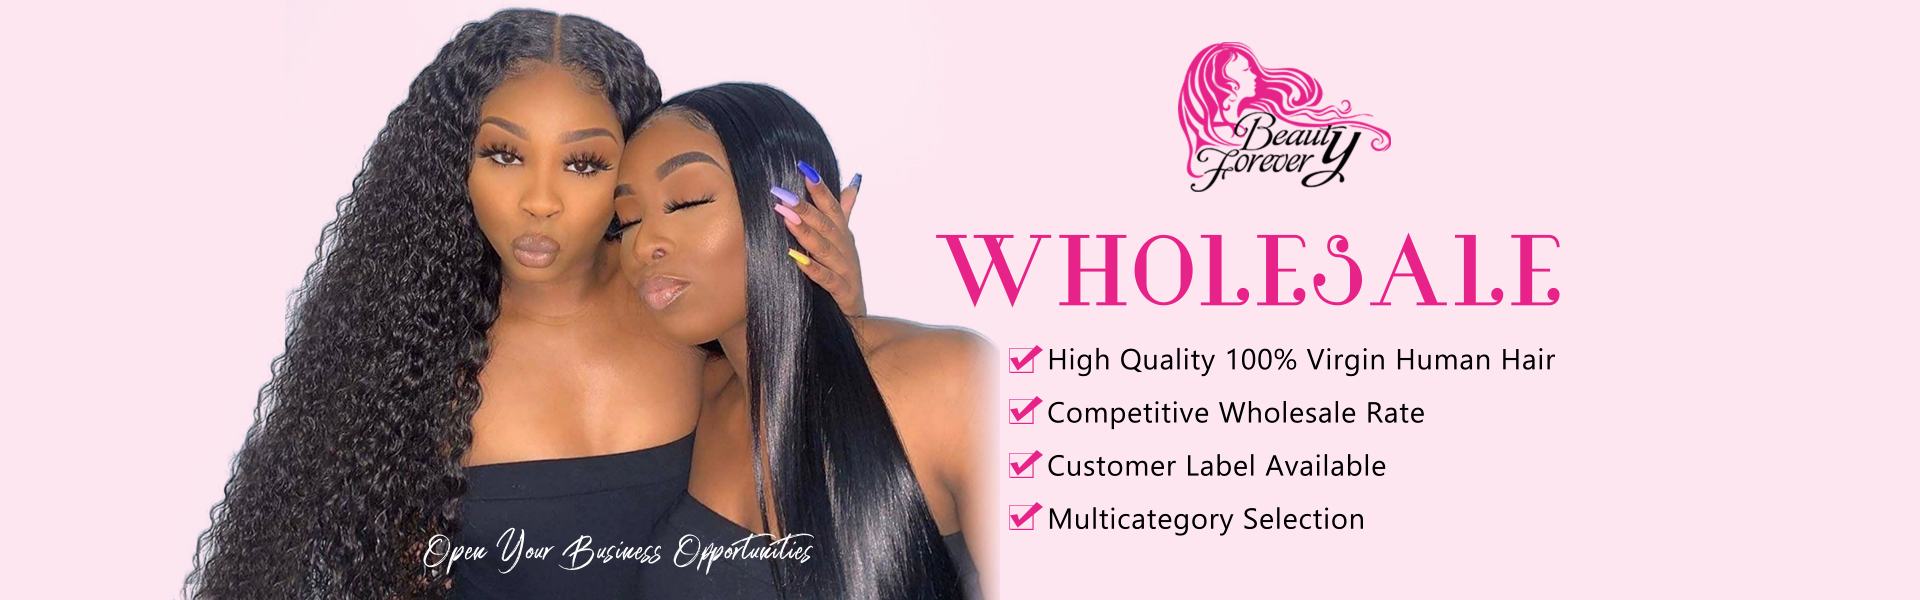 Wholesale beautyforever Hair